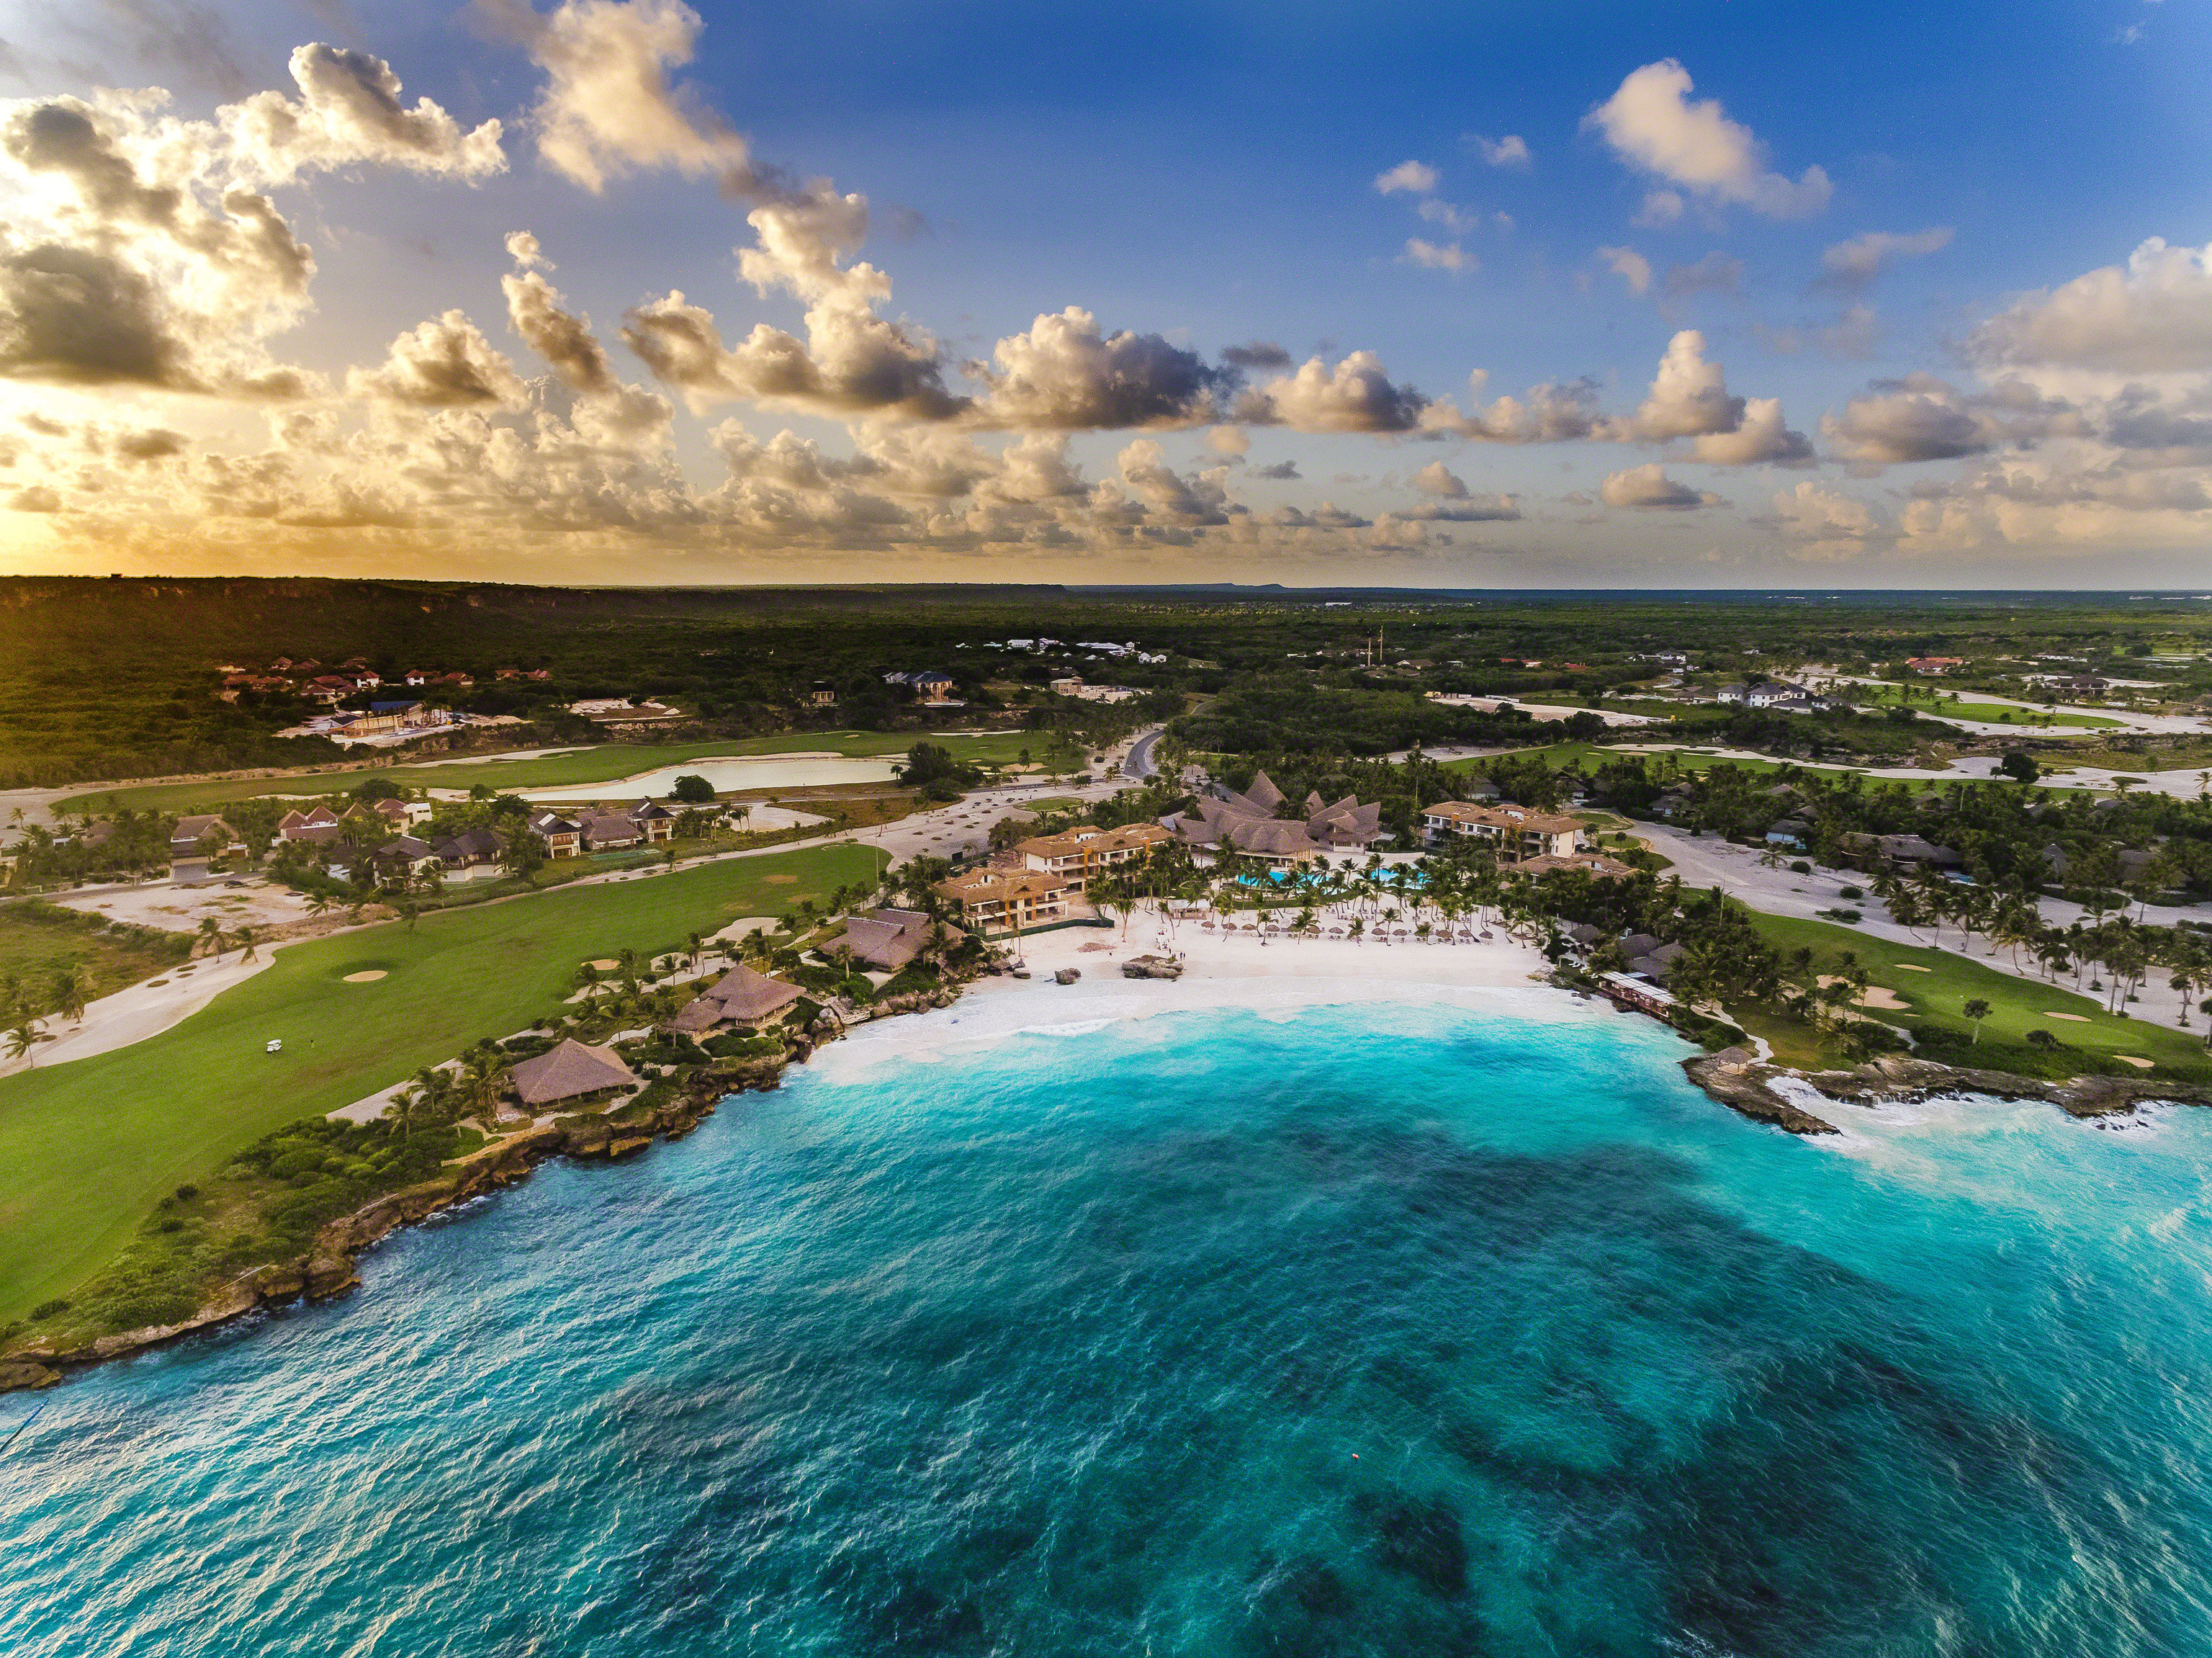 Hotels sky outdoor water Nature geographical feature Coast shore landform Sea body of water Ocean River wave bay aerial photography landscape Beach cape Lagoon cove promontory day